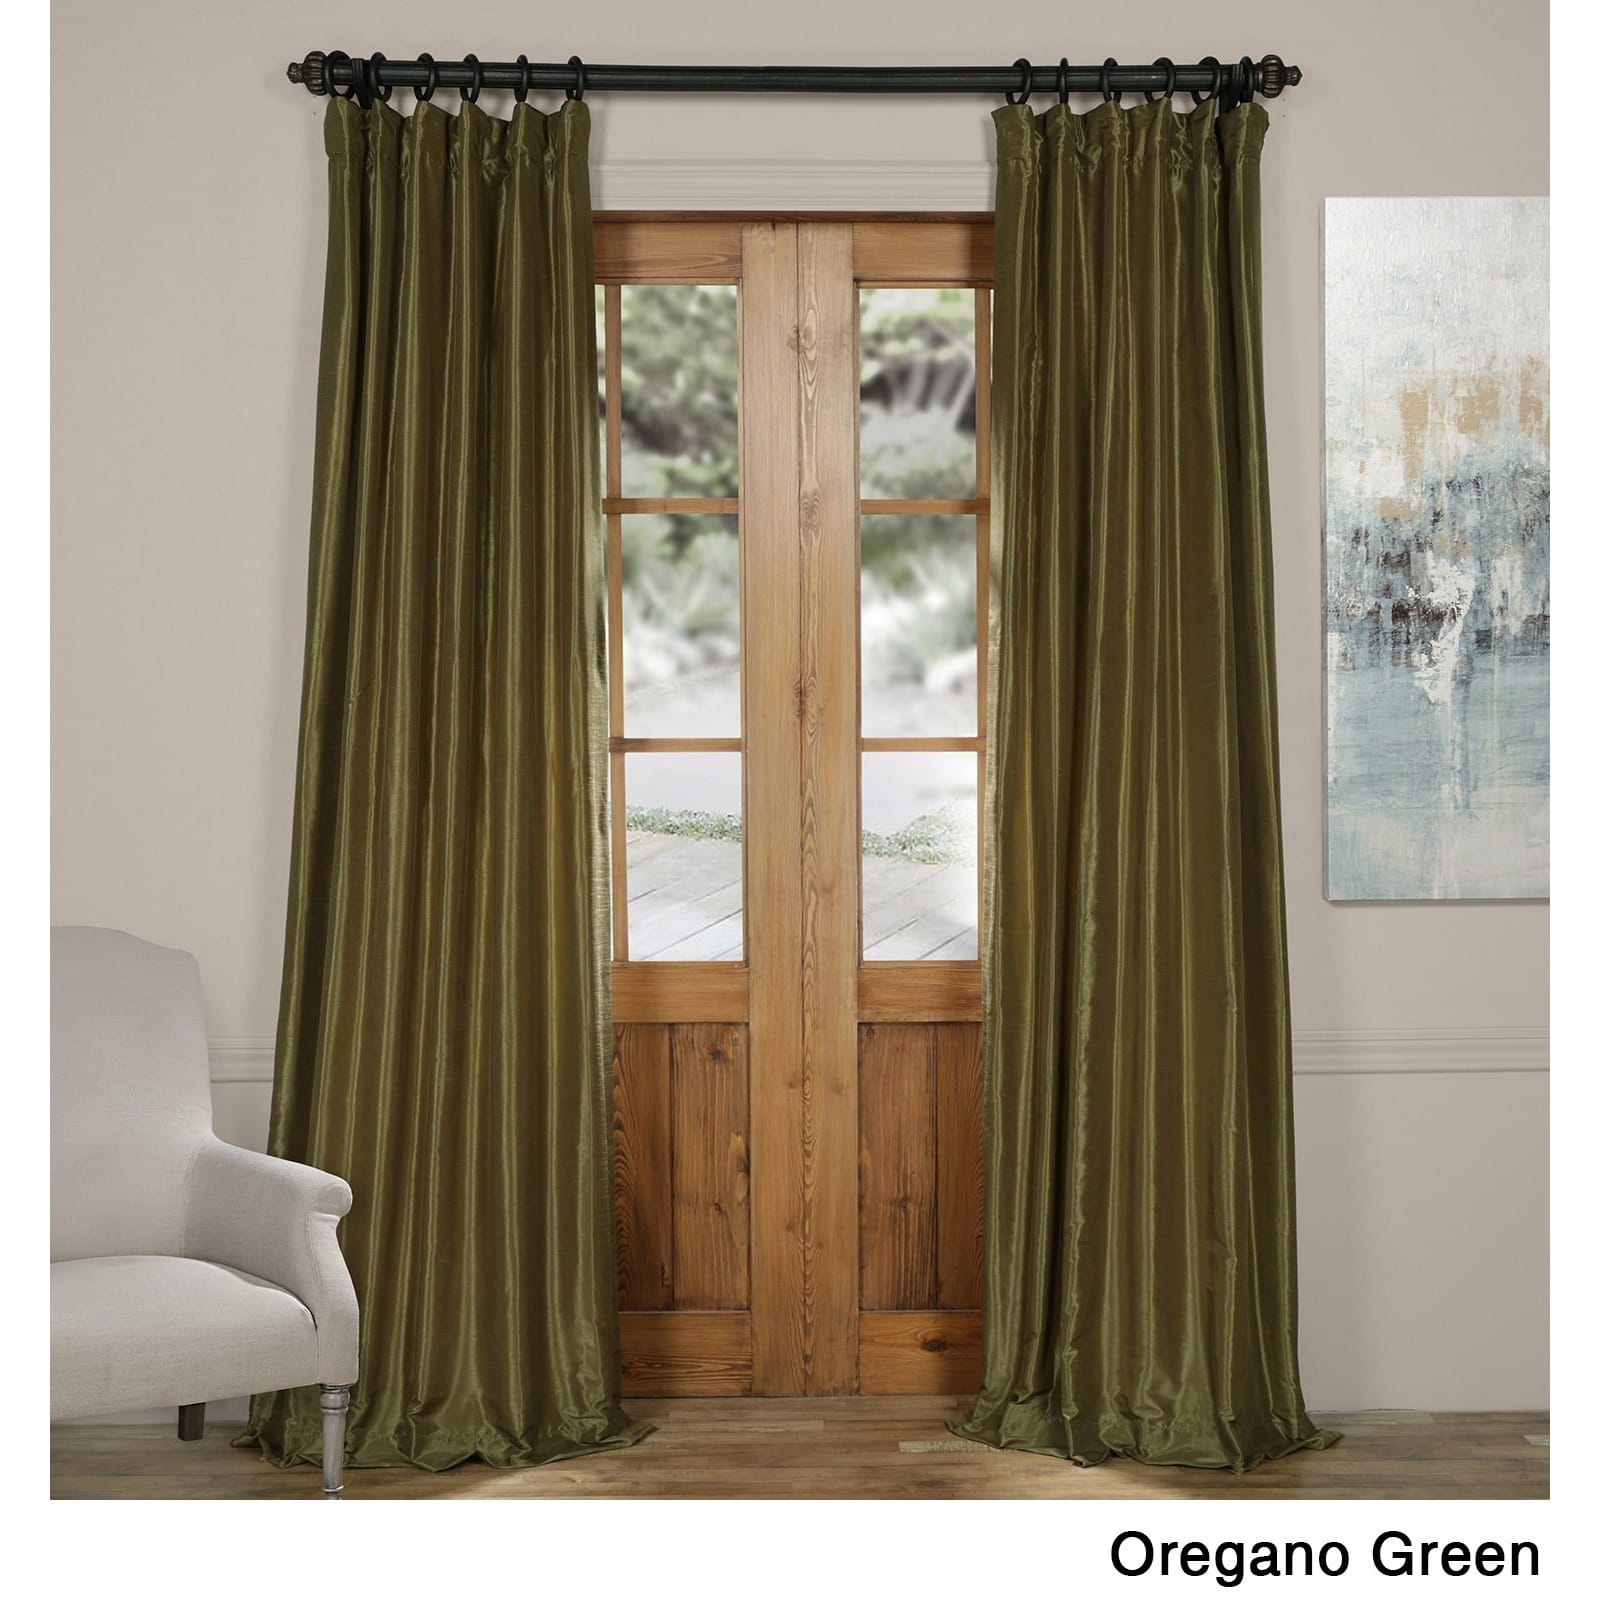 Oregano Green Vintage Textured Faux Dupioni Silk Curtain ...